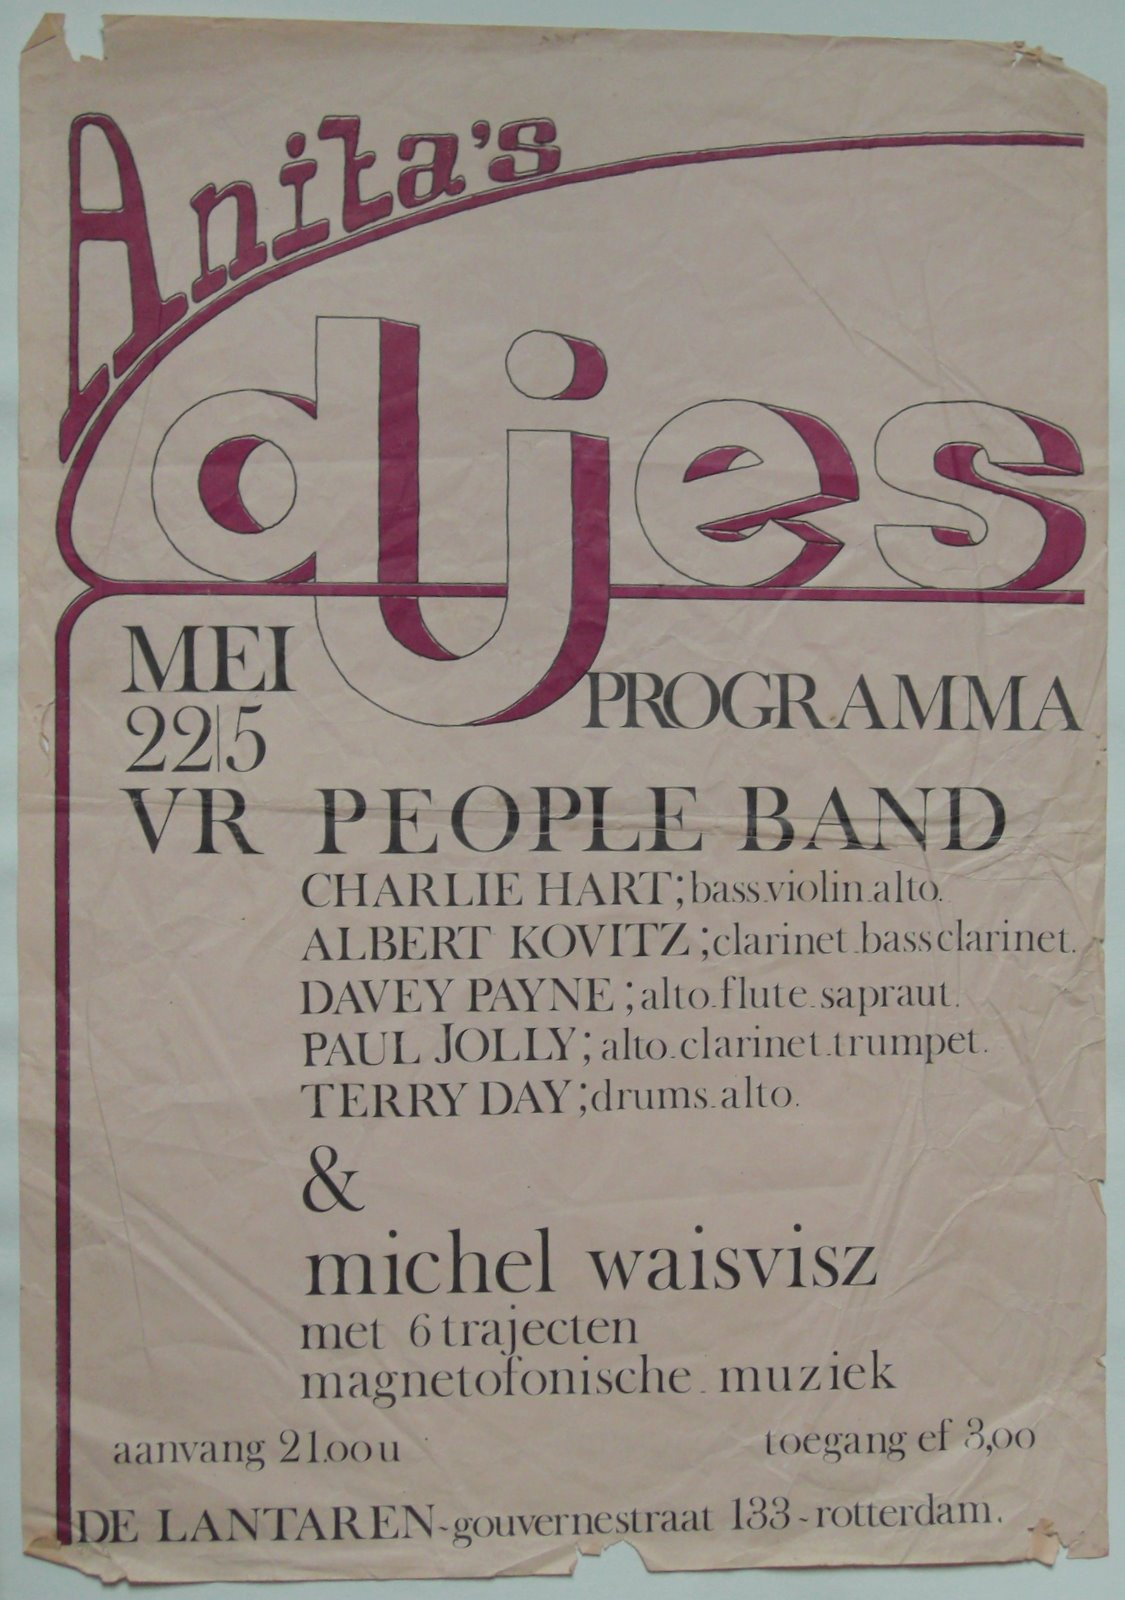 PEOPLE BAND POSTER circa 1967